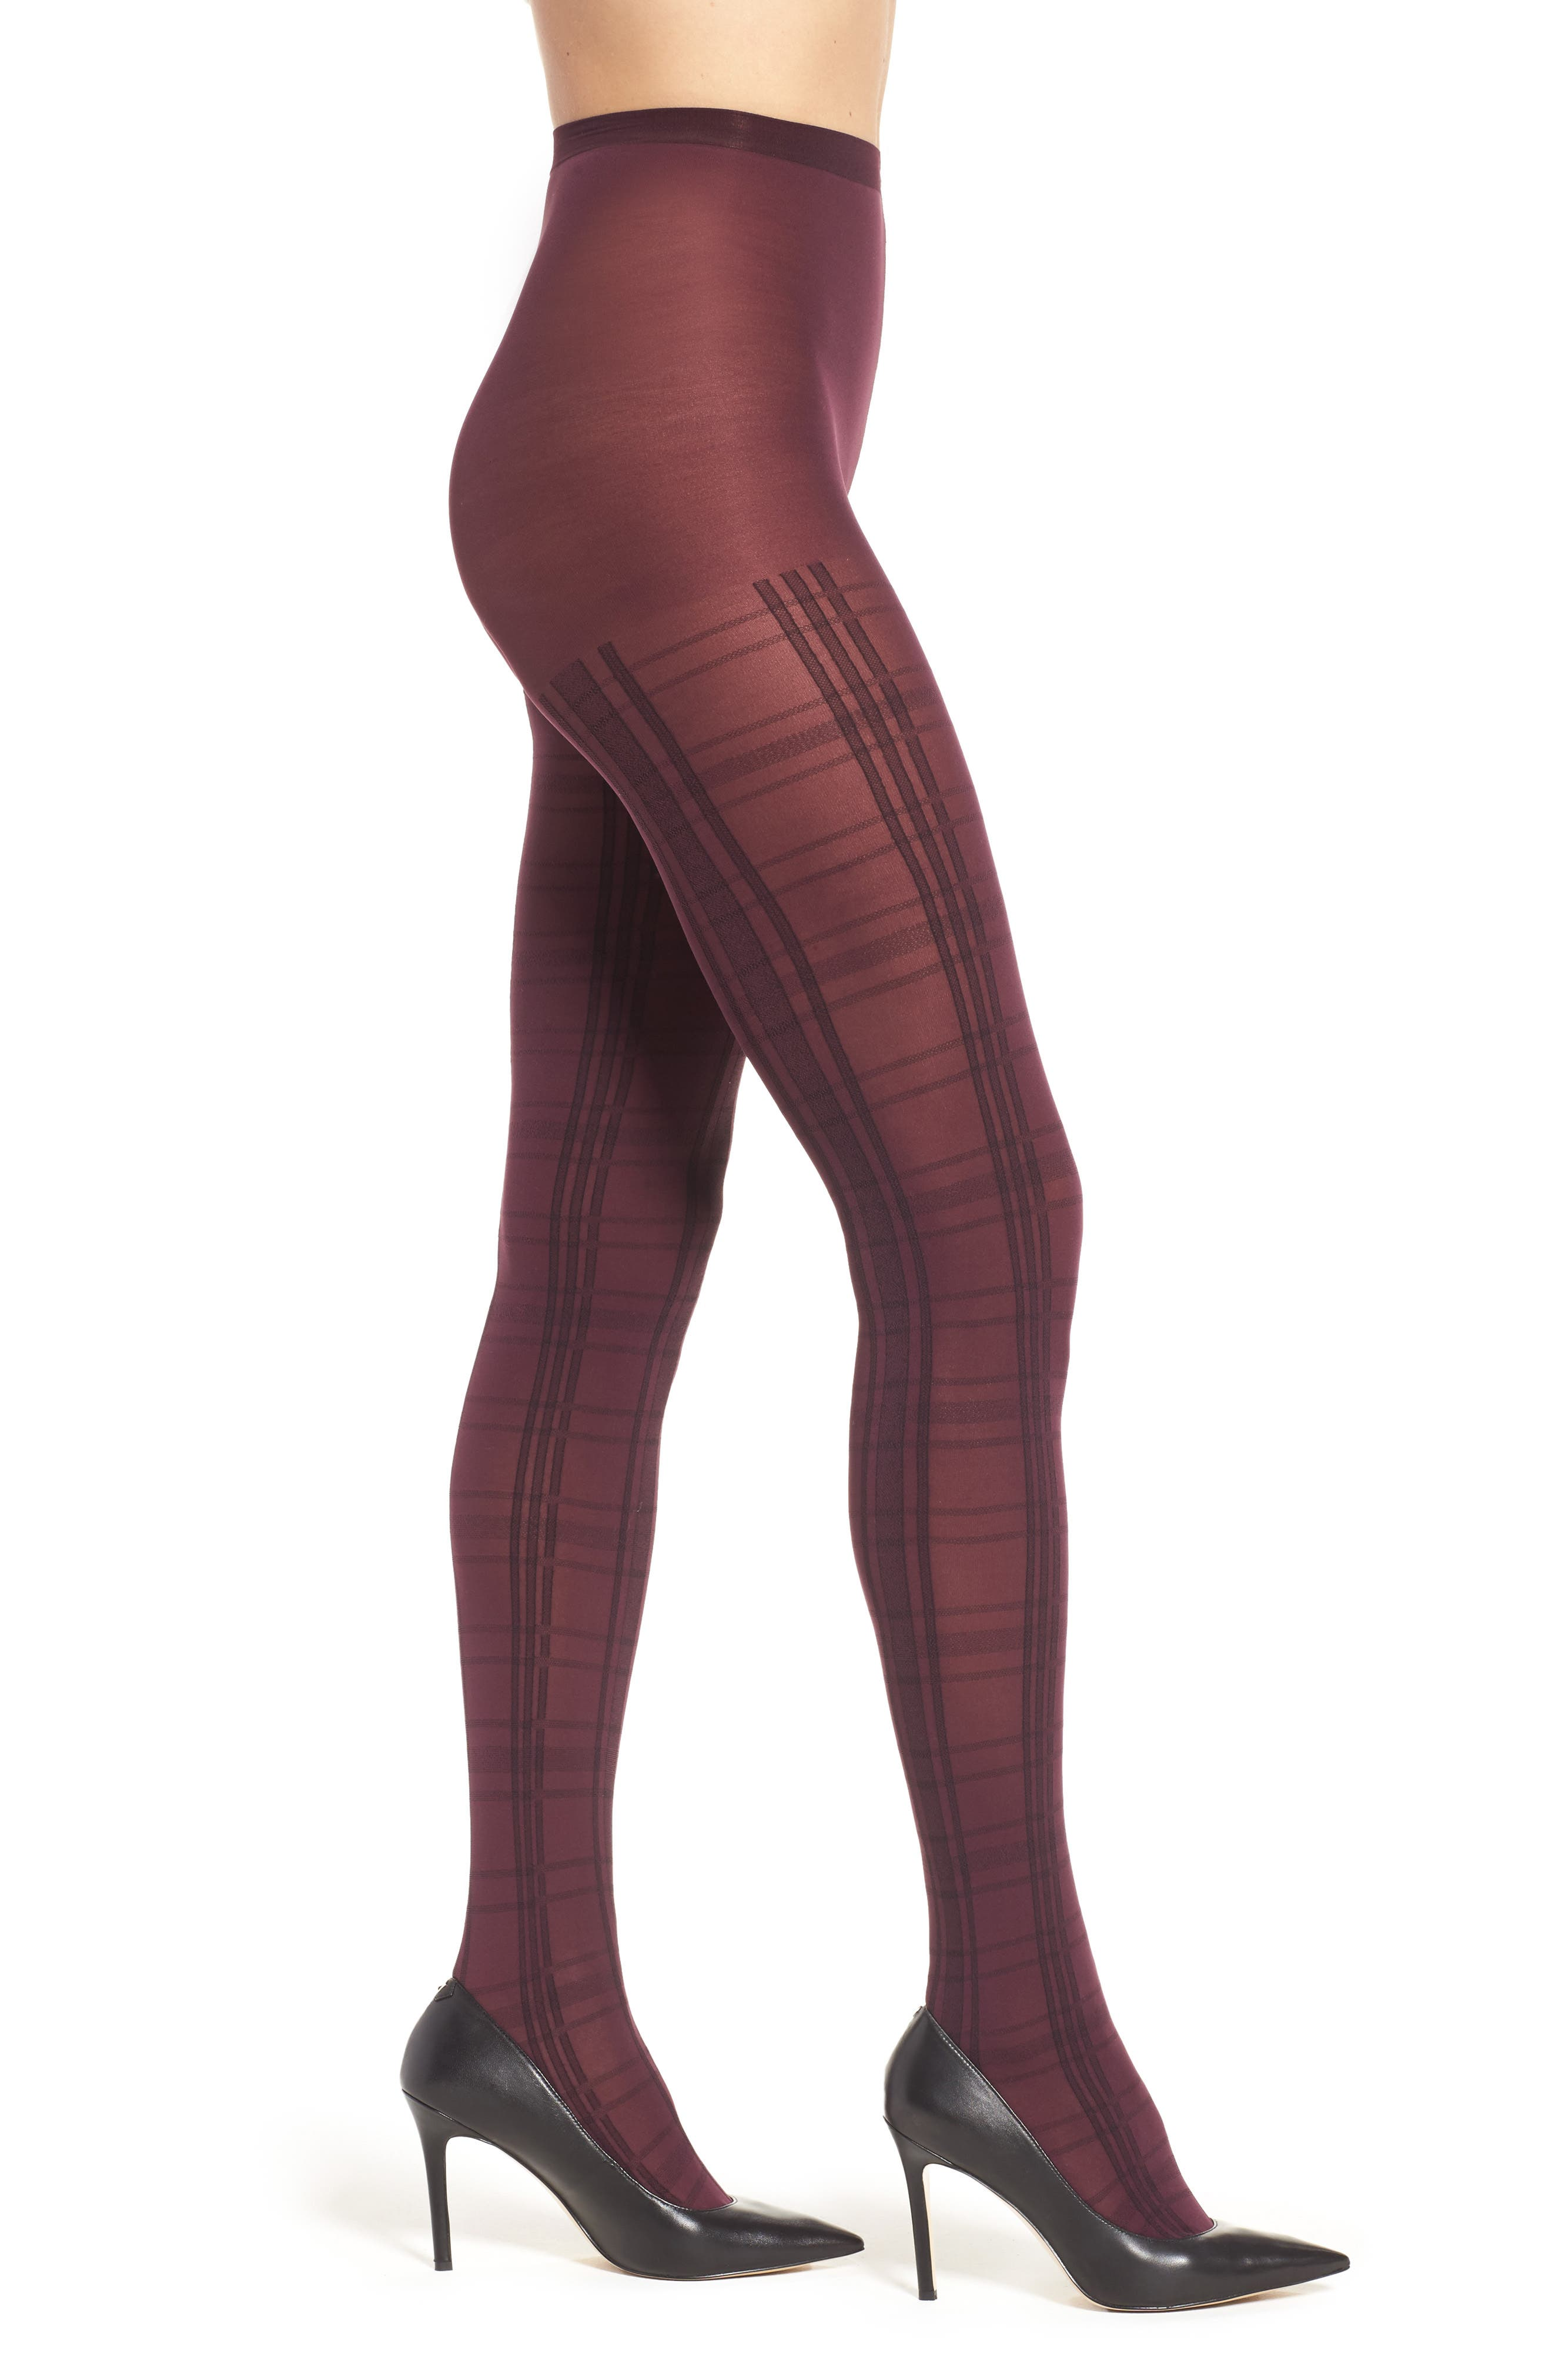 Hue Plaid Control Top Tights